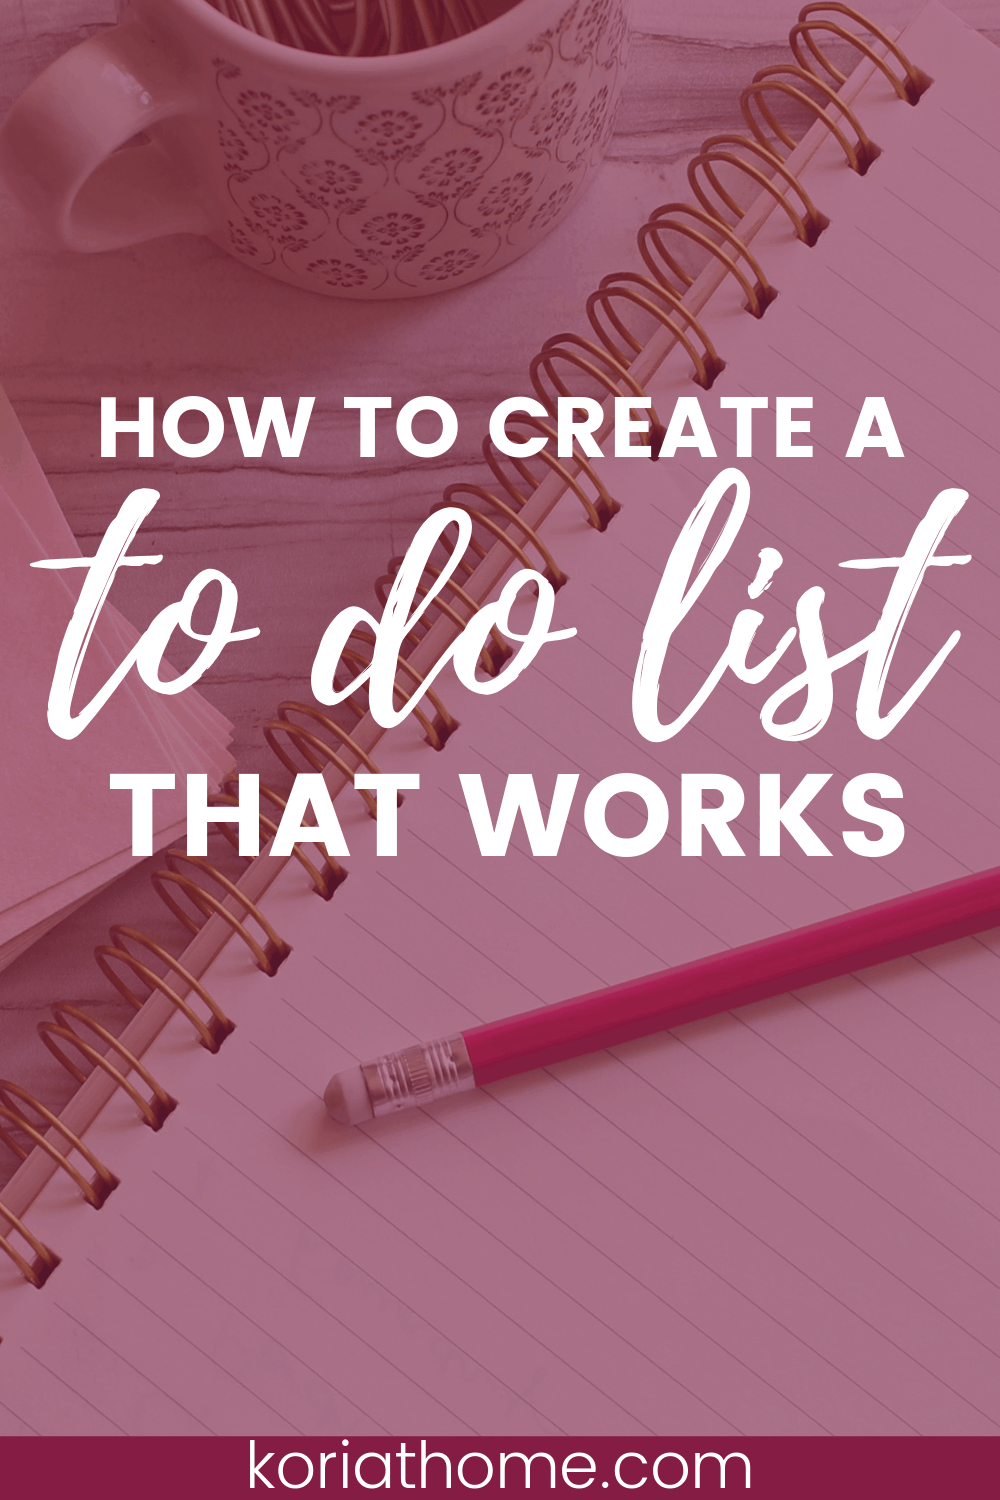 How to Create a To Do List That Works For You (Not Against You) 1